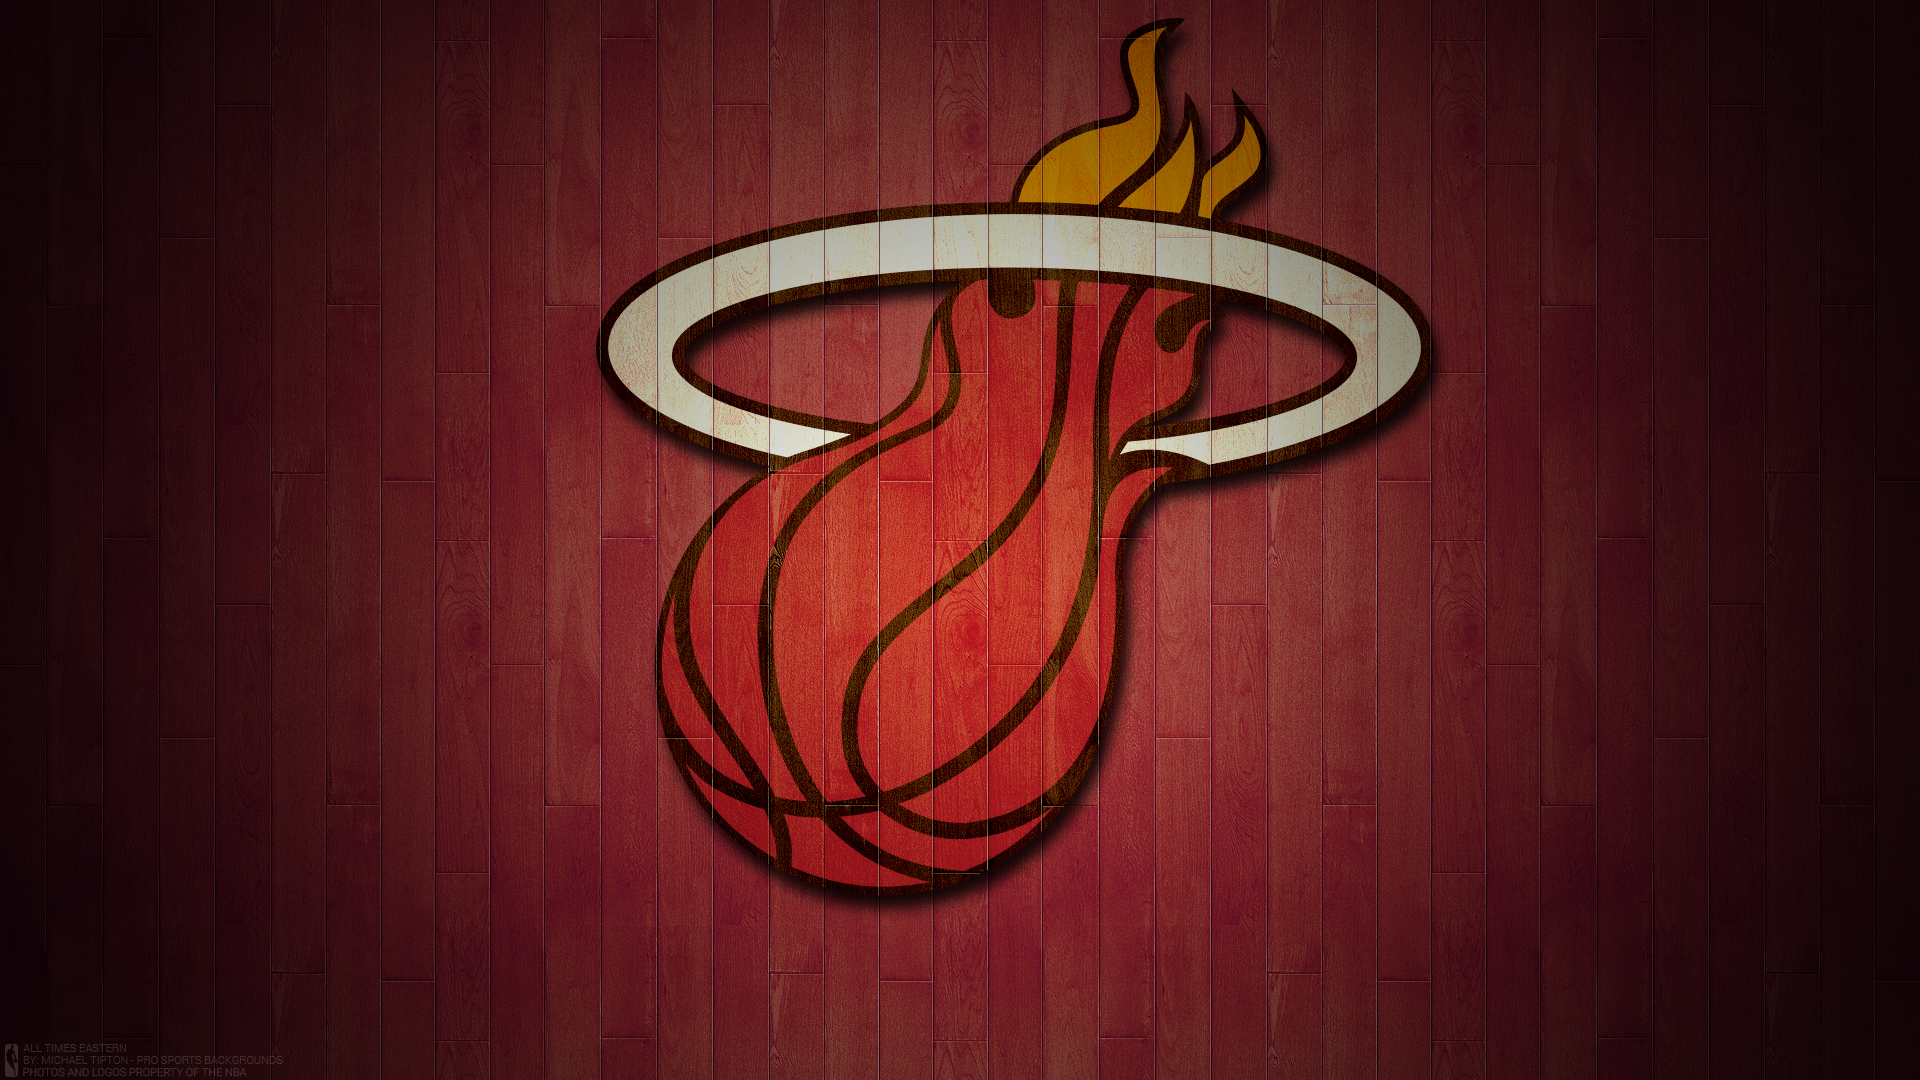 Miami Heat HD Wallpaper Background Image 1920x1080 ID981334 1920x1080